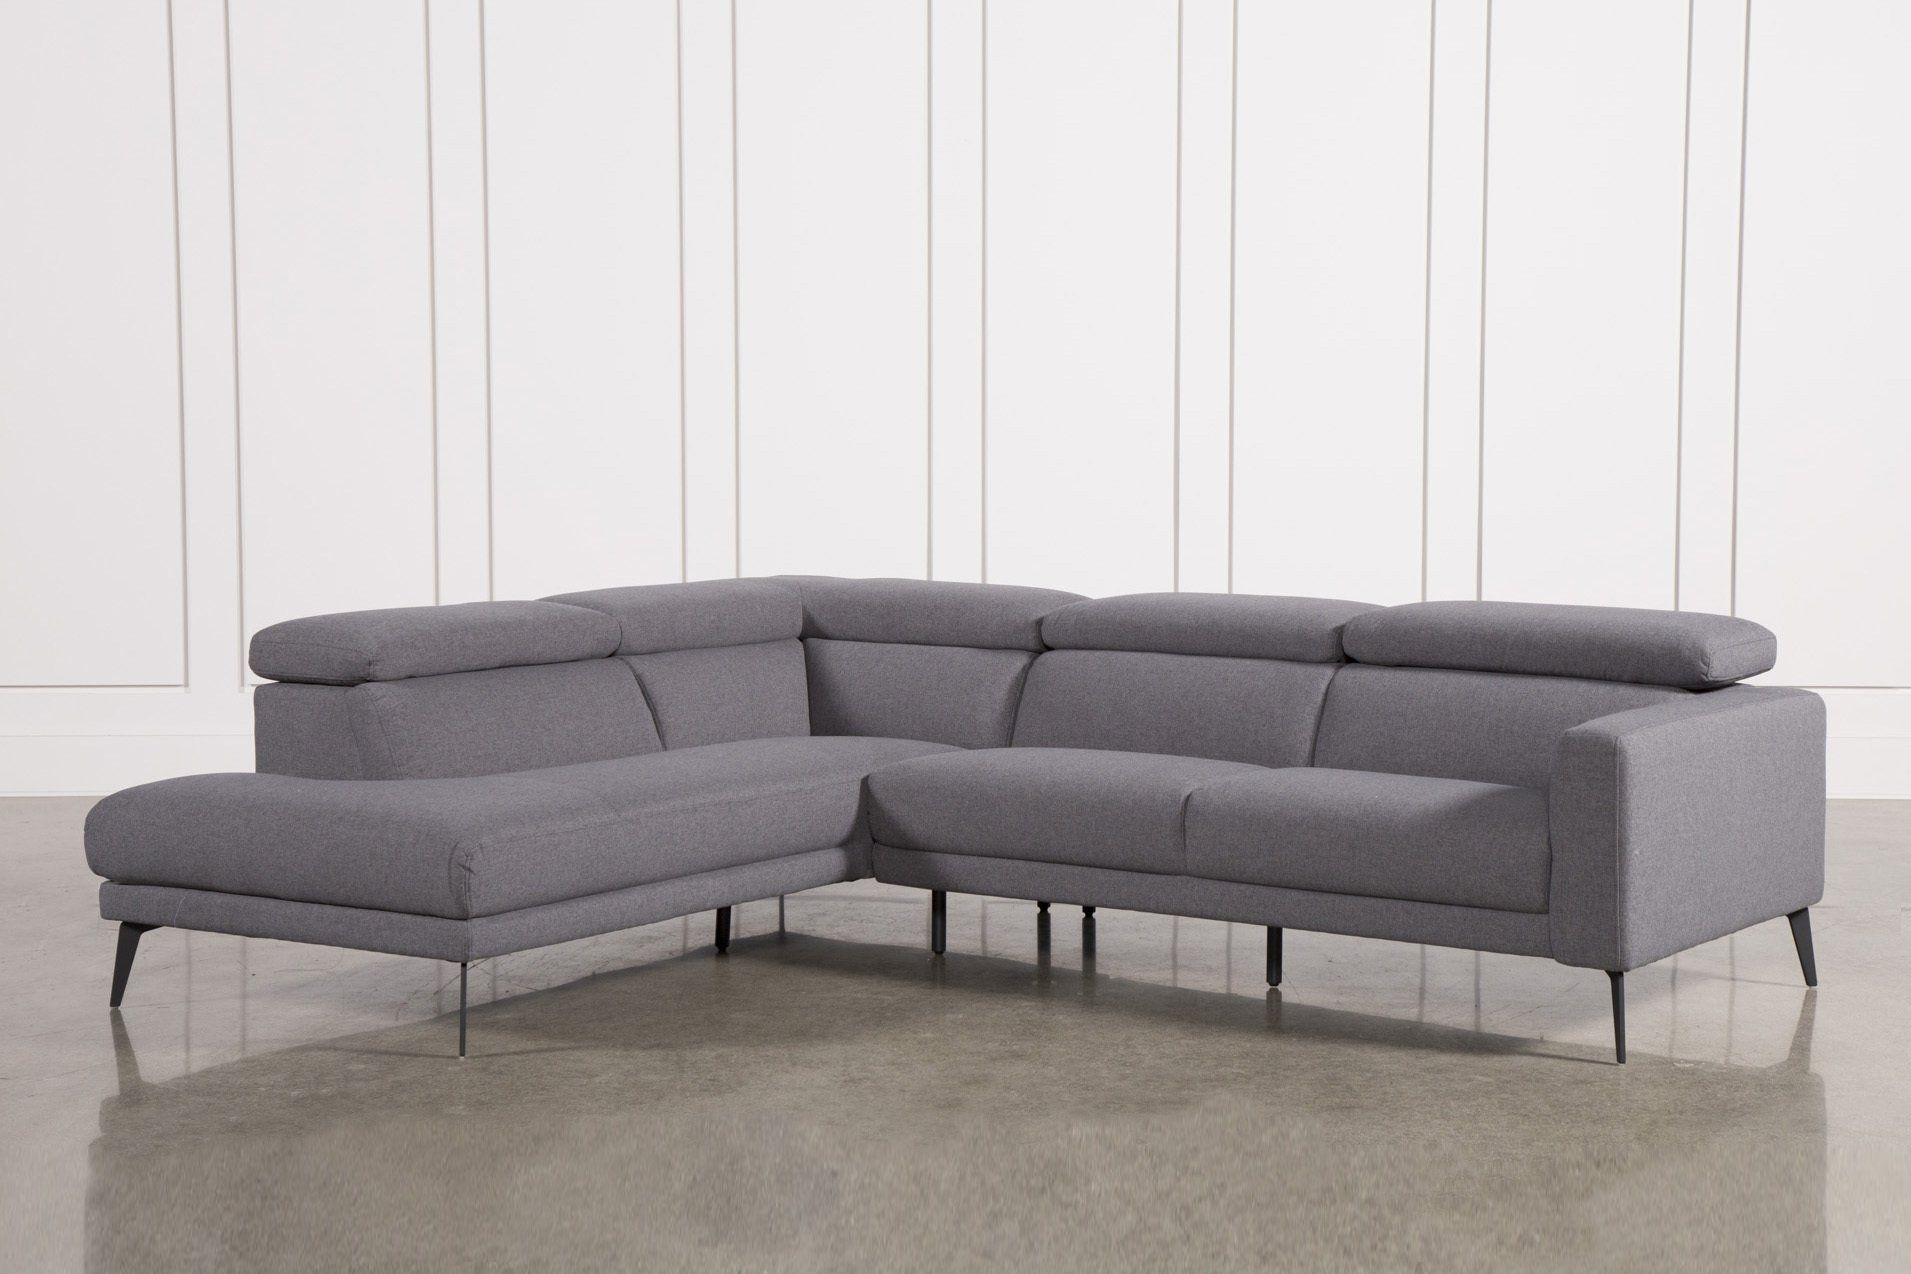 Ikea - Norsborg, Sofa, Edum Beige, , Large Or Small, Color for Cosmos Grey 2 Piece Sectionals With Raf Chaise (Image 13 of 30)